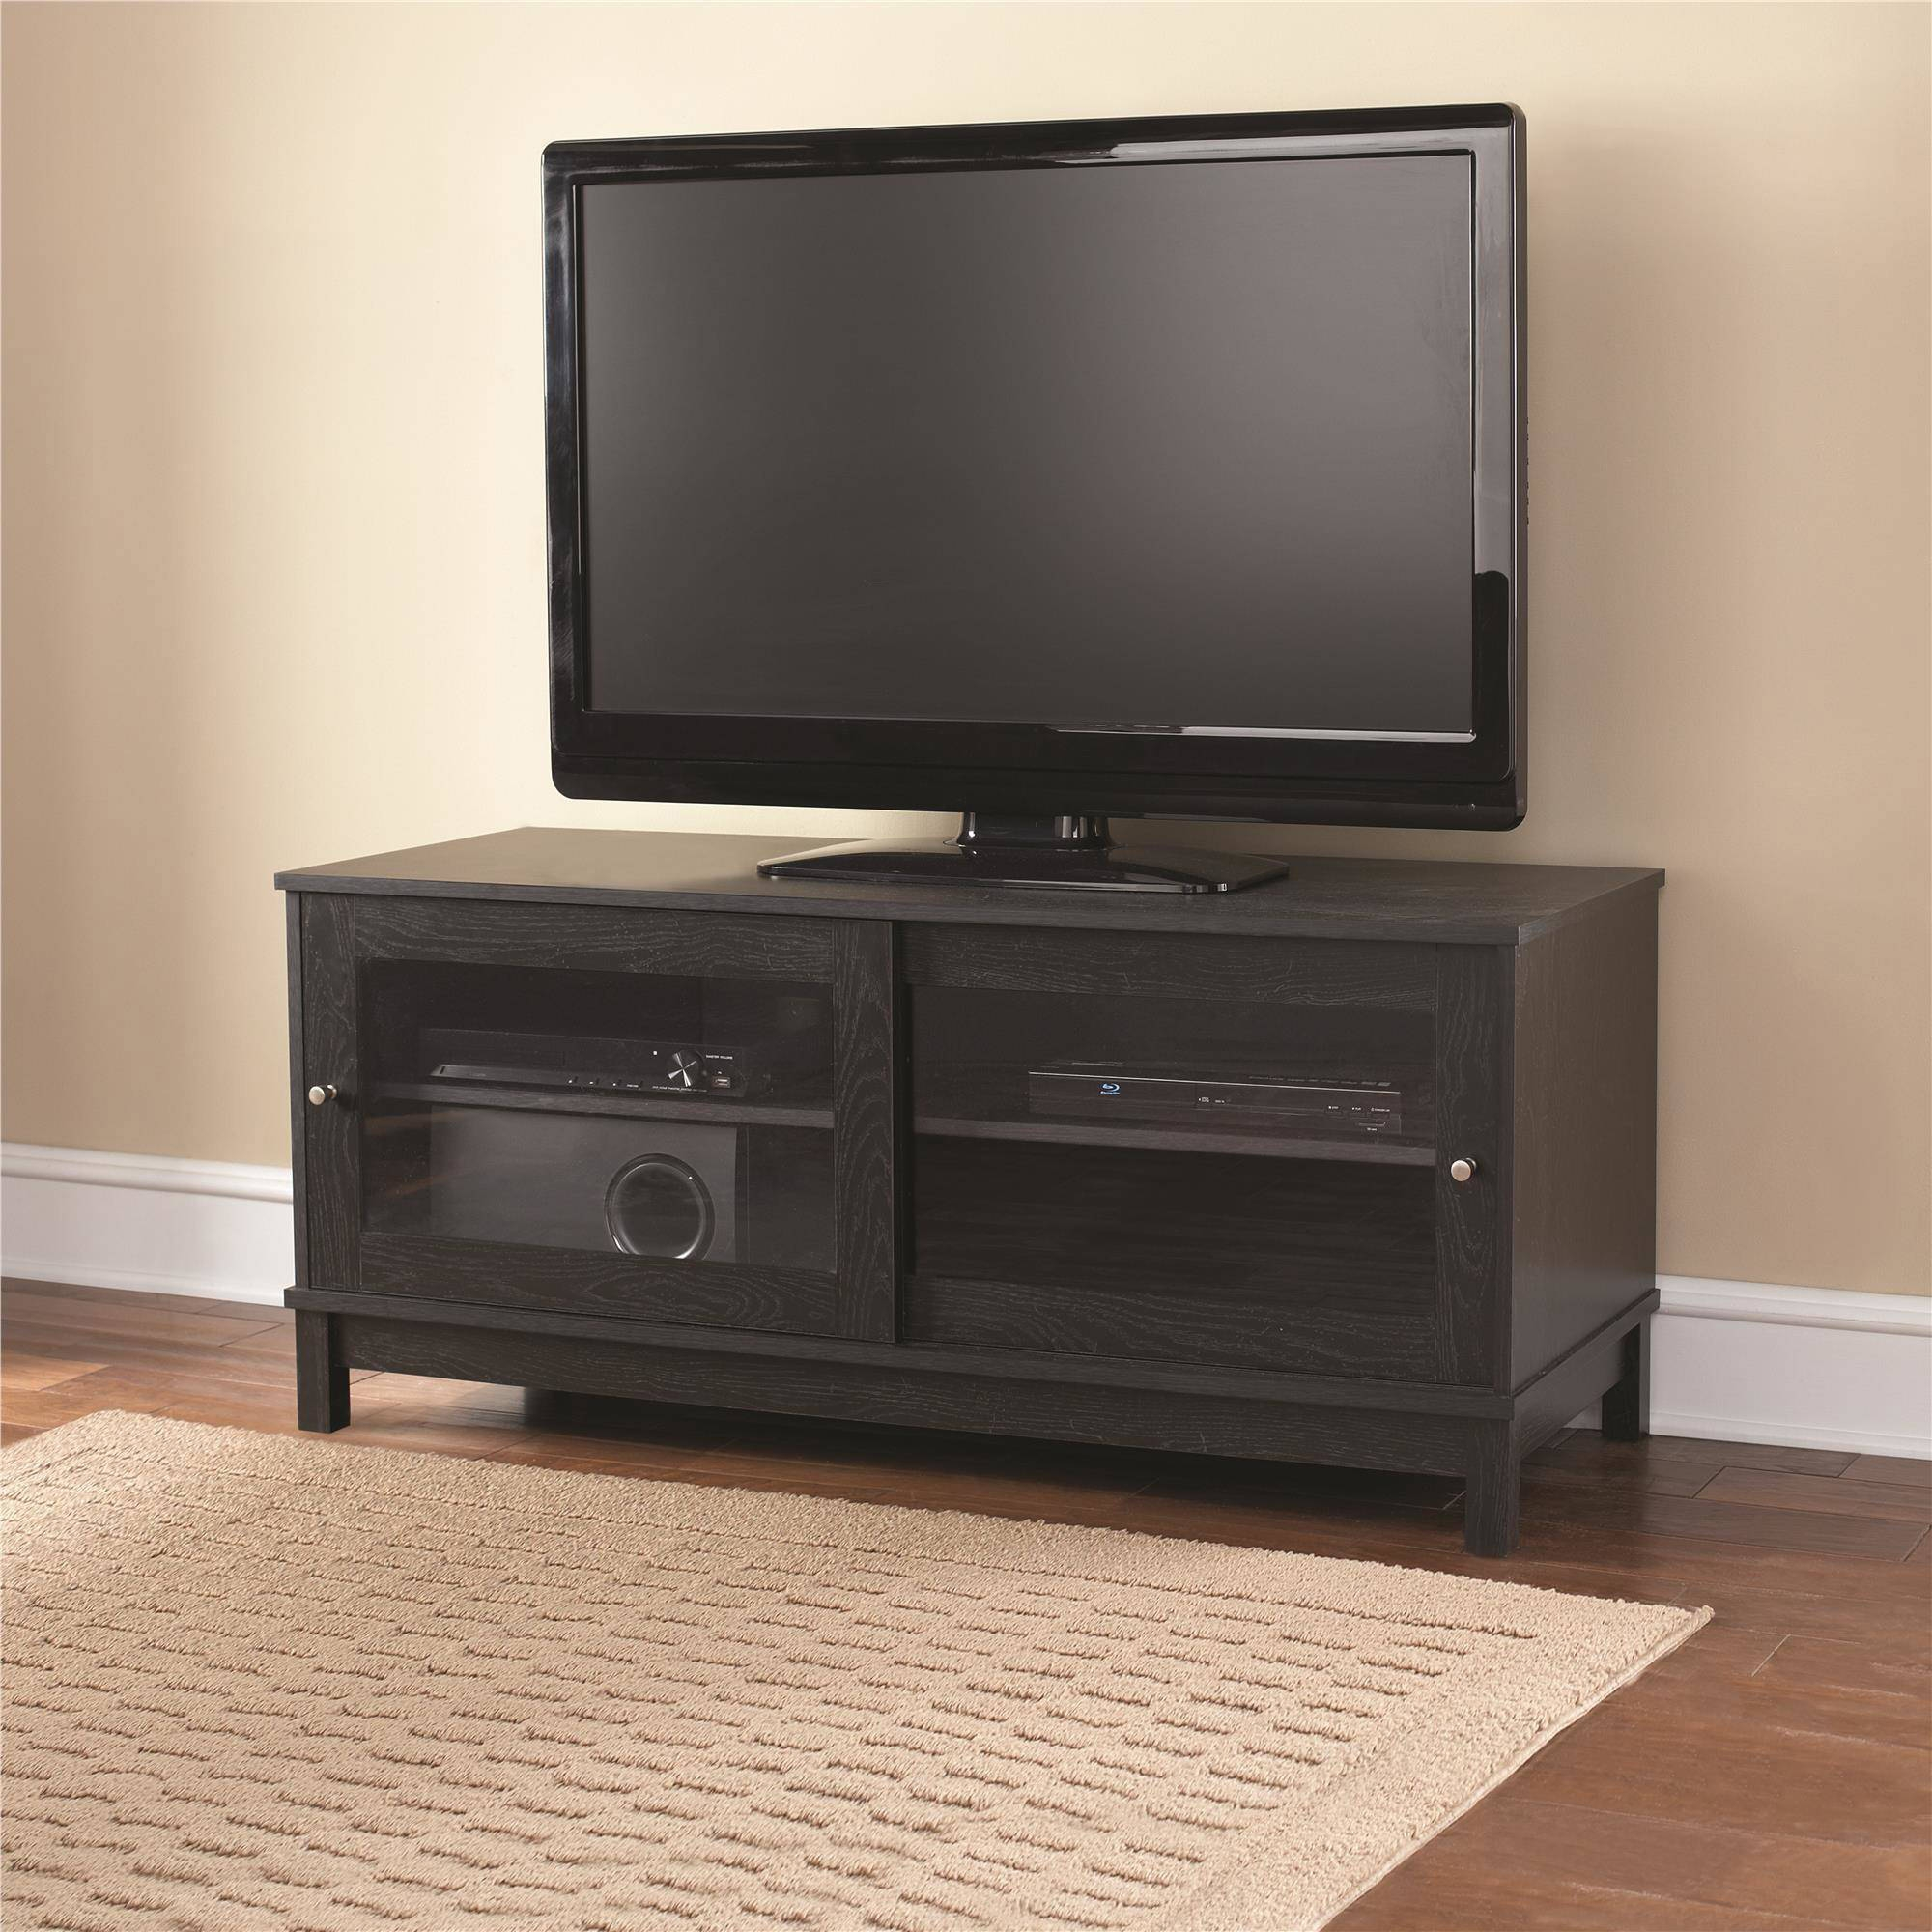 Mainstays Tv Stand With Sliding Glass Doors